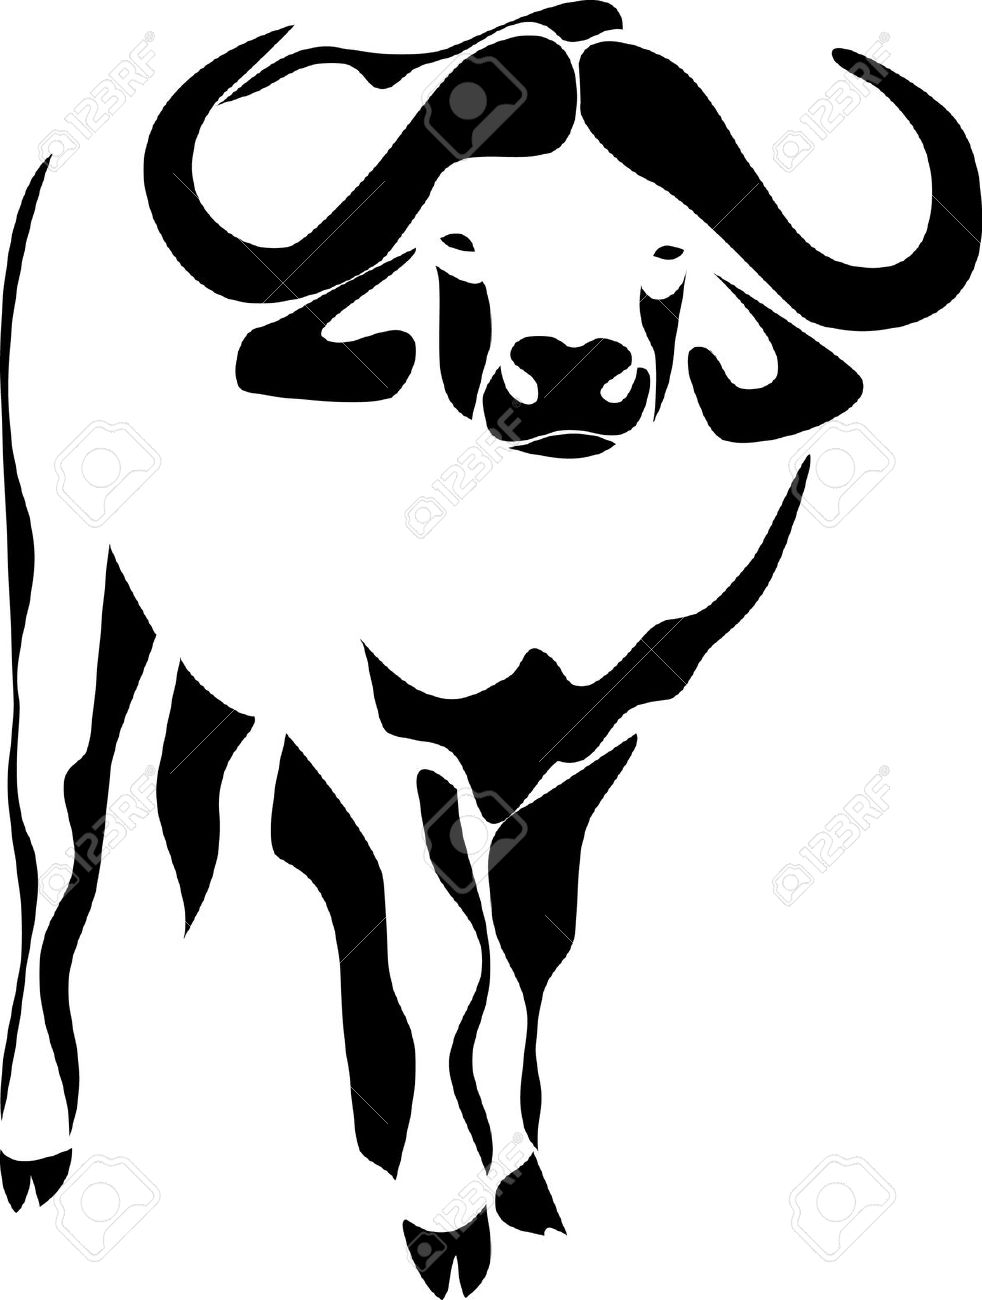 Water Buffalo clipart #16, Download drawings